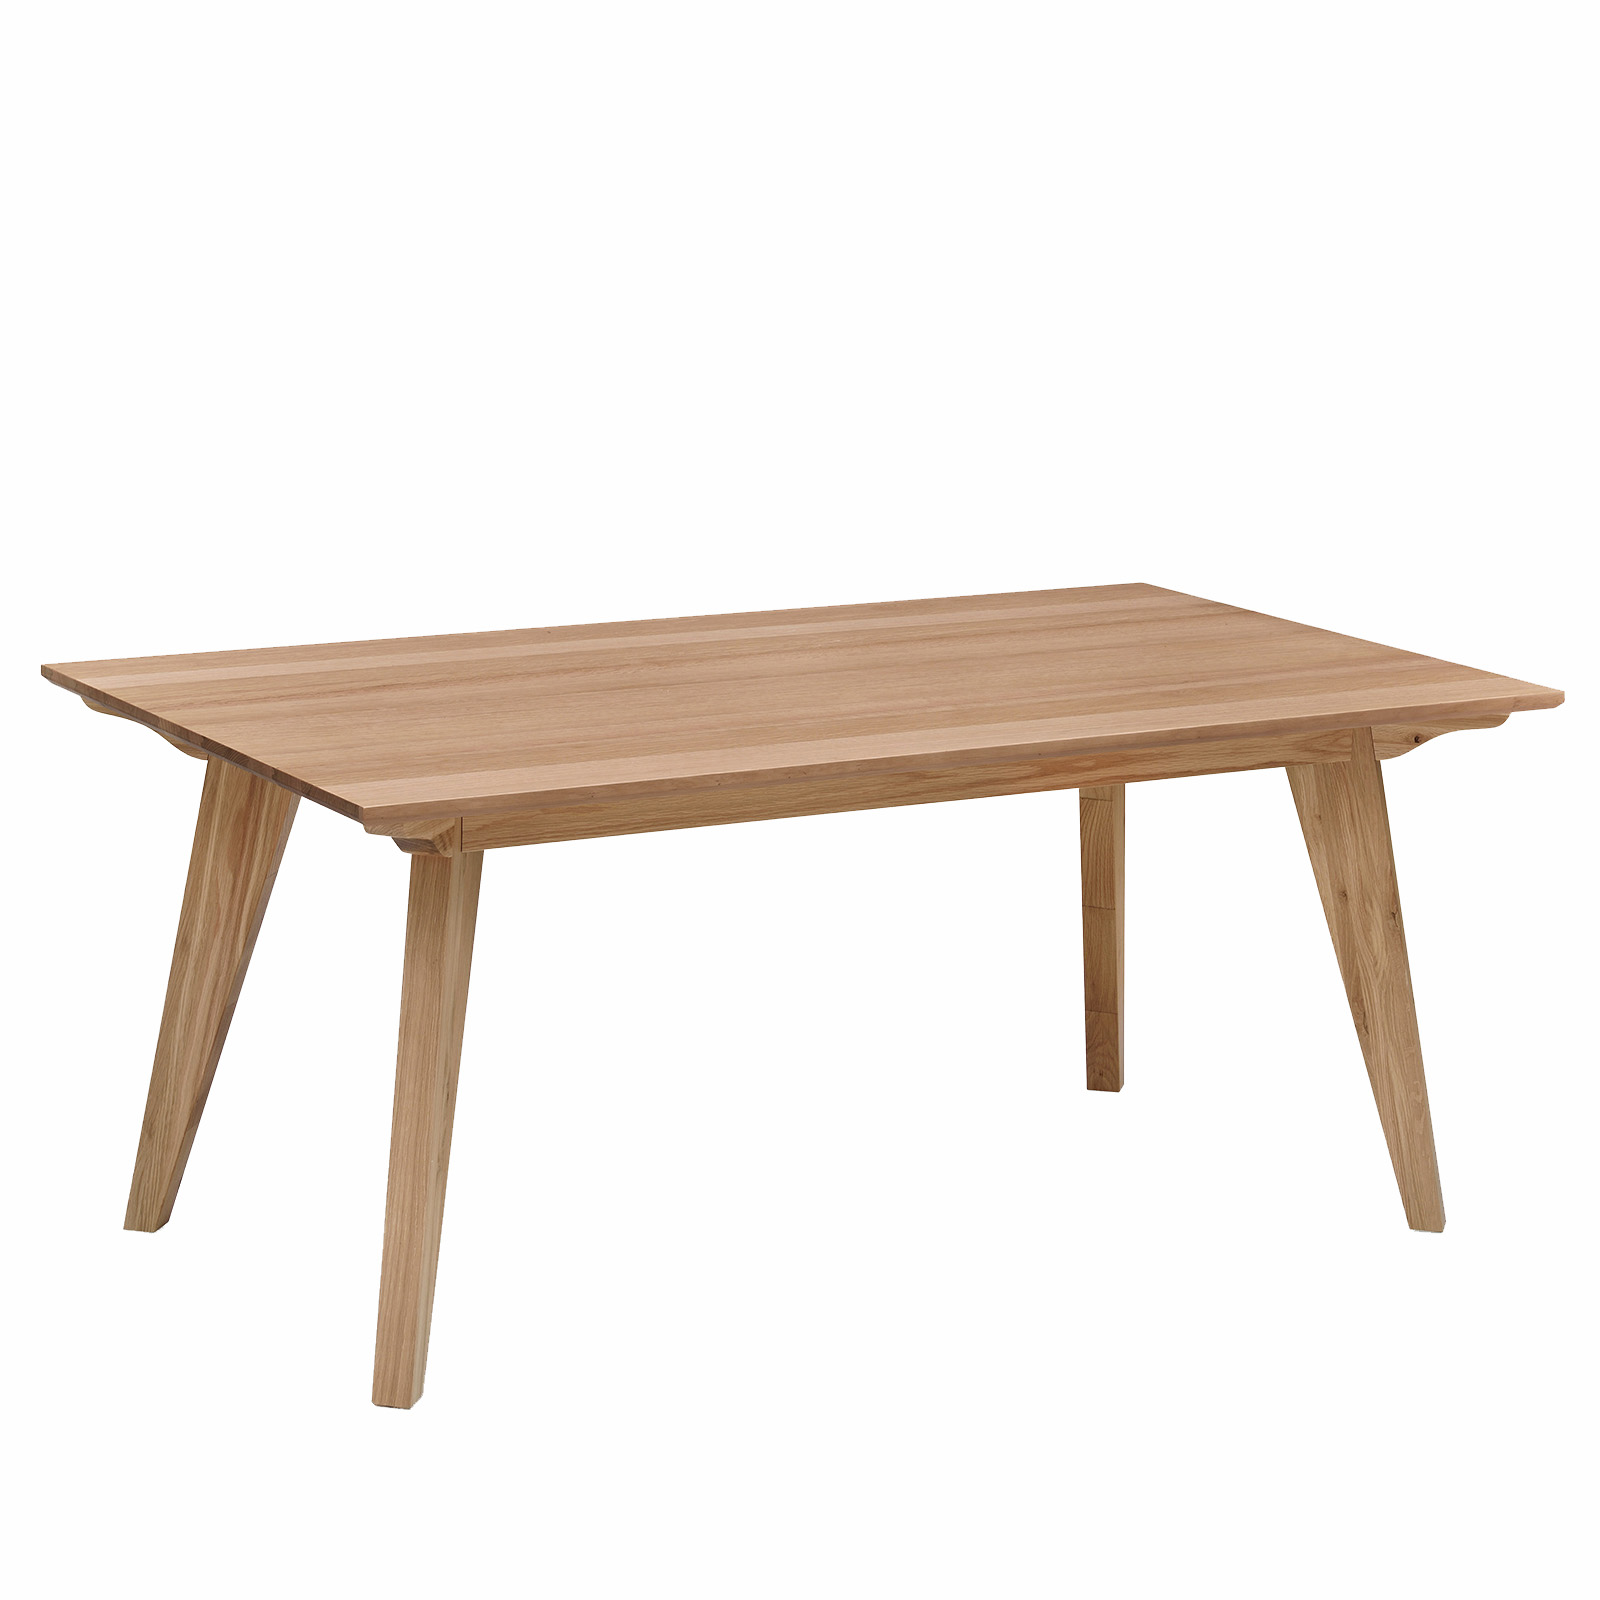 Alison White Oak Natural Veneer Dining Table Modern Design